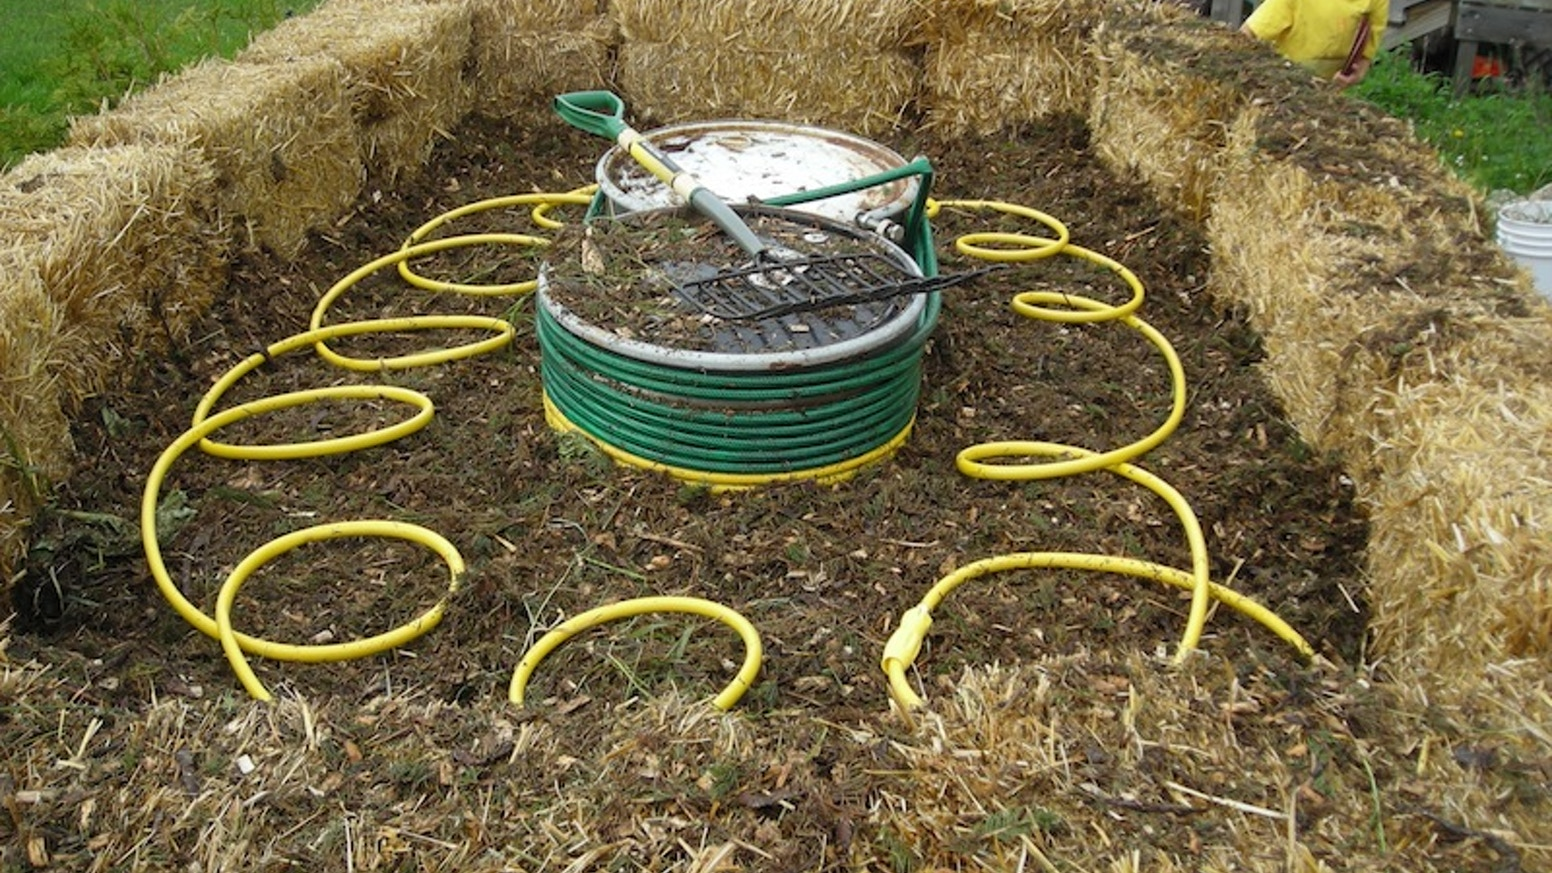 The Methane Midden - Heat / Energy with Compost by Robert